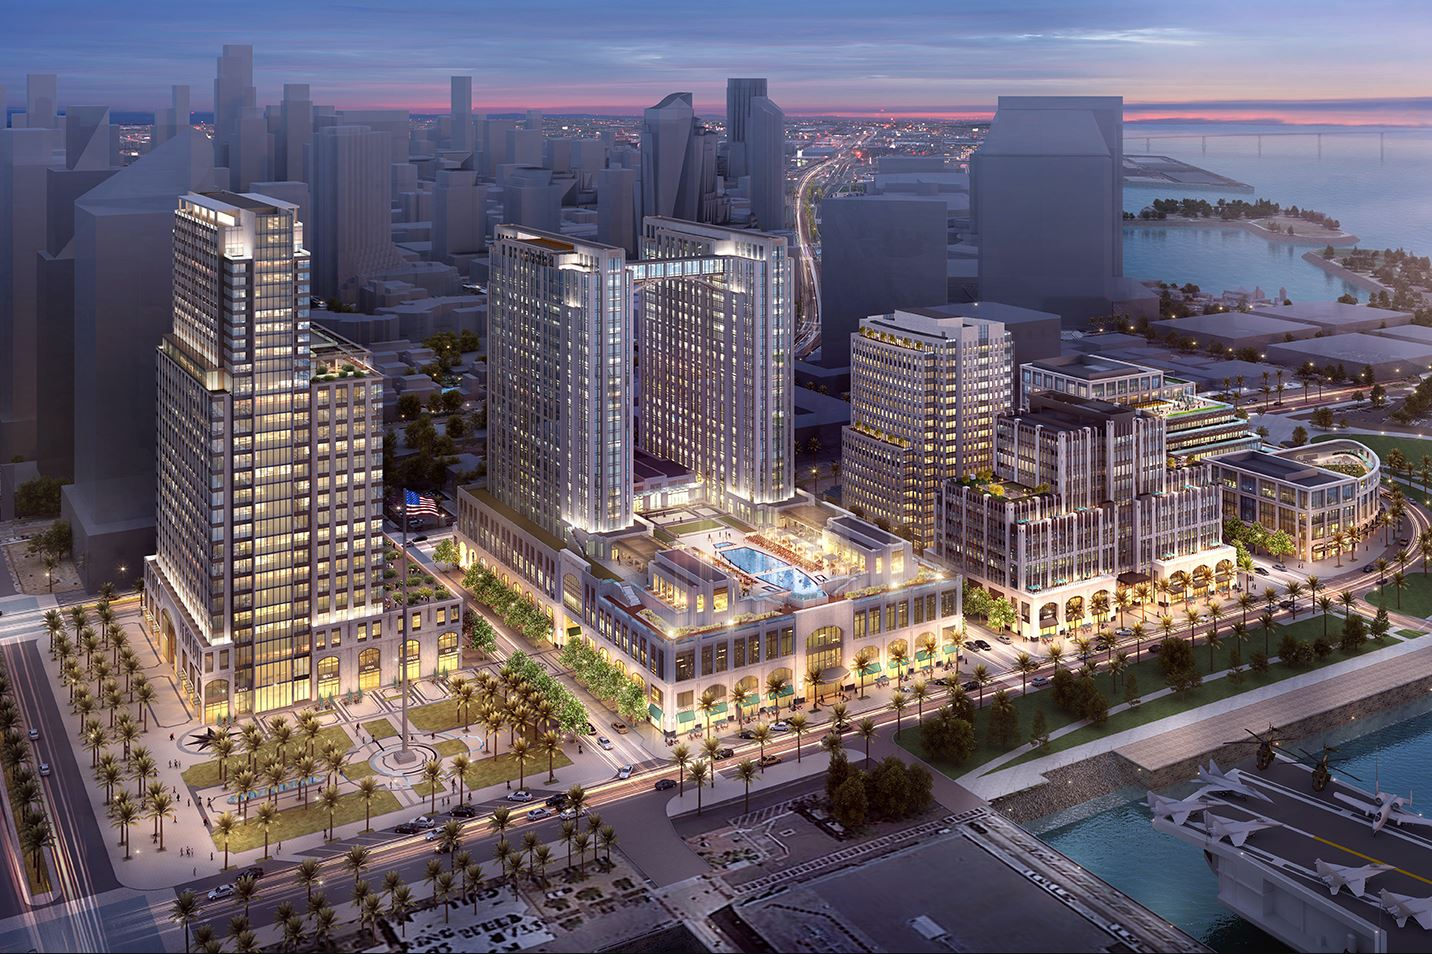 Manchester Pacific Gateway Project downtown San Diego image